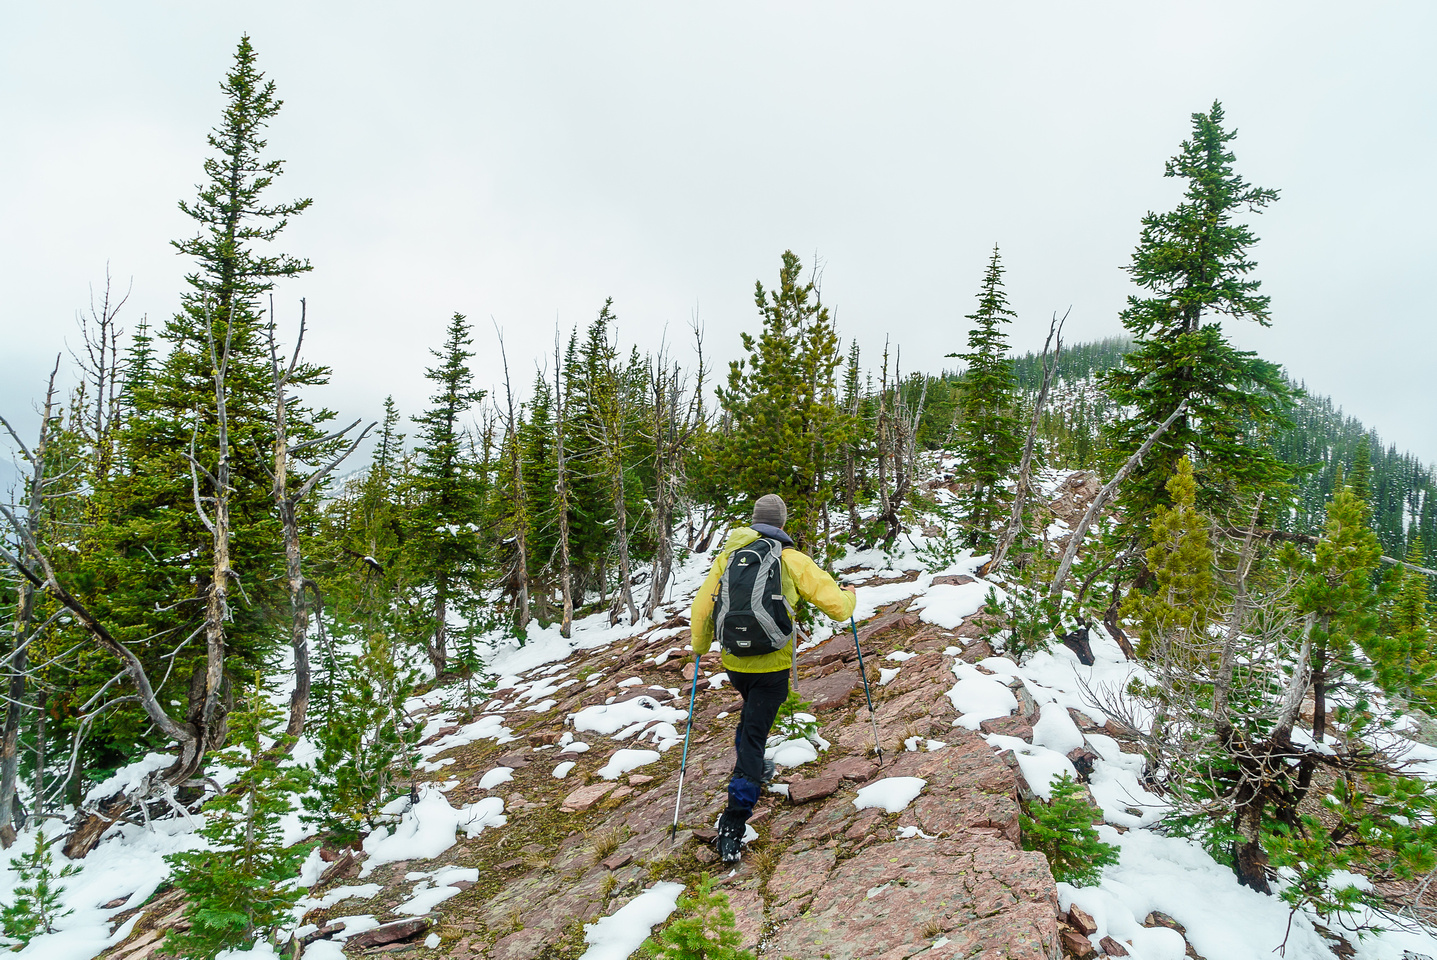 Sometimes we could stick right to the ridge, other times we had to drop down on climber's left to avoid nasty bits.